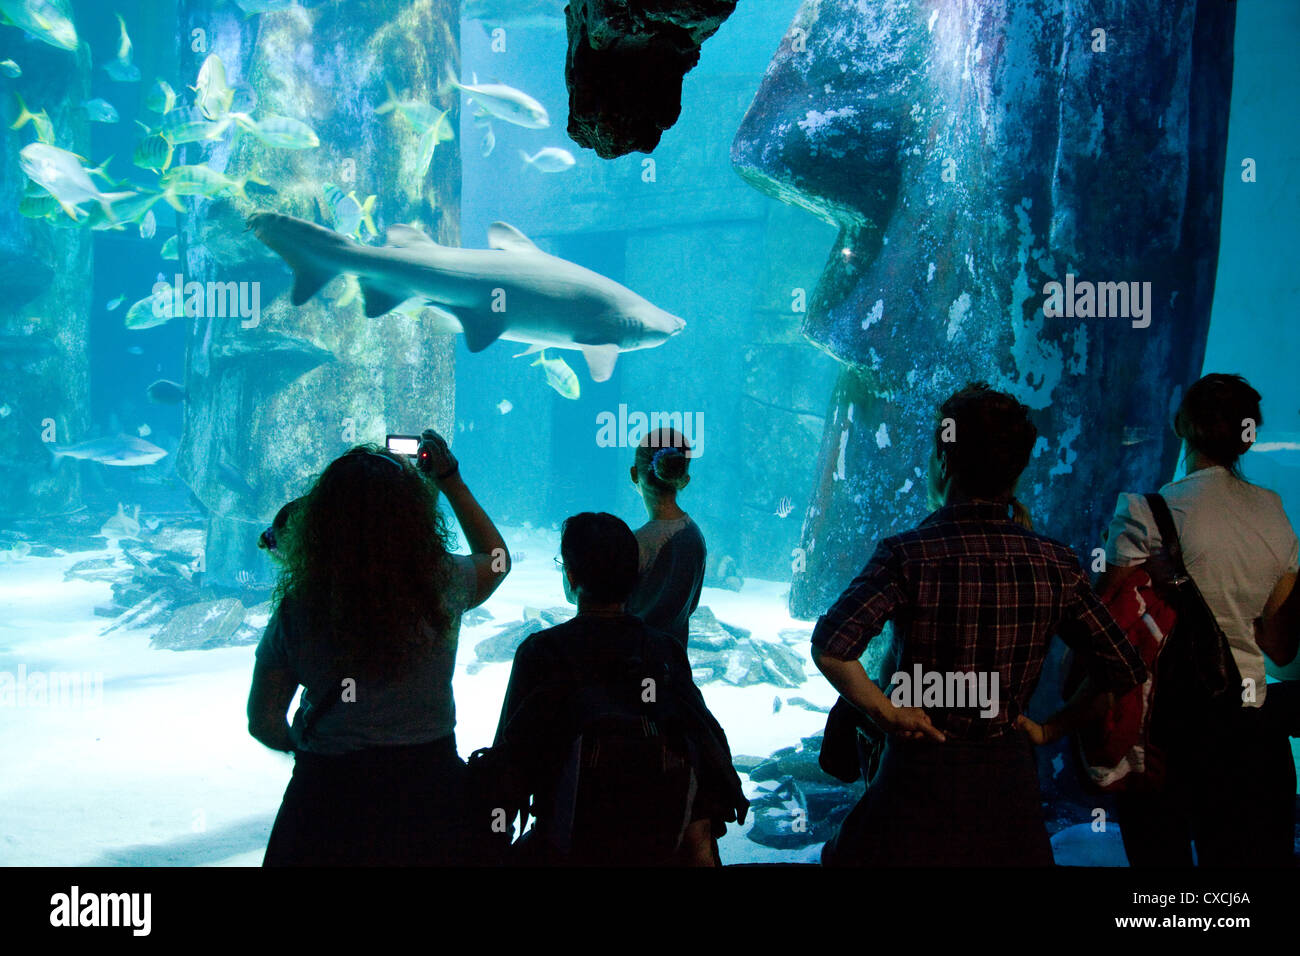 people looking at a shark, Sea Life London Aquarium, London UK - Stock Image